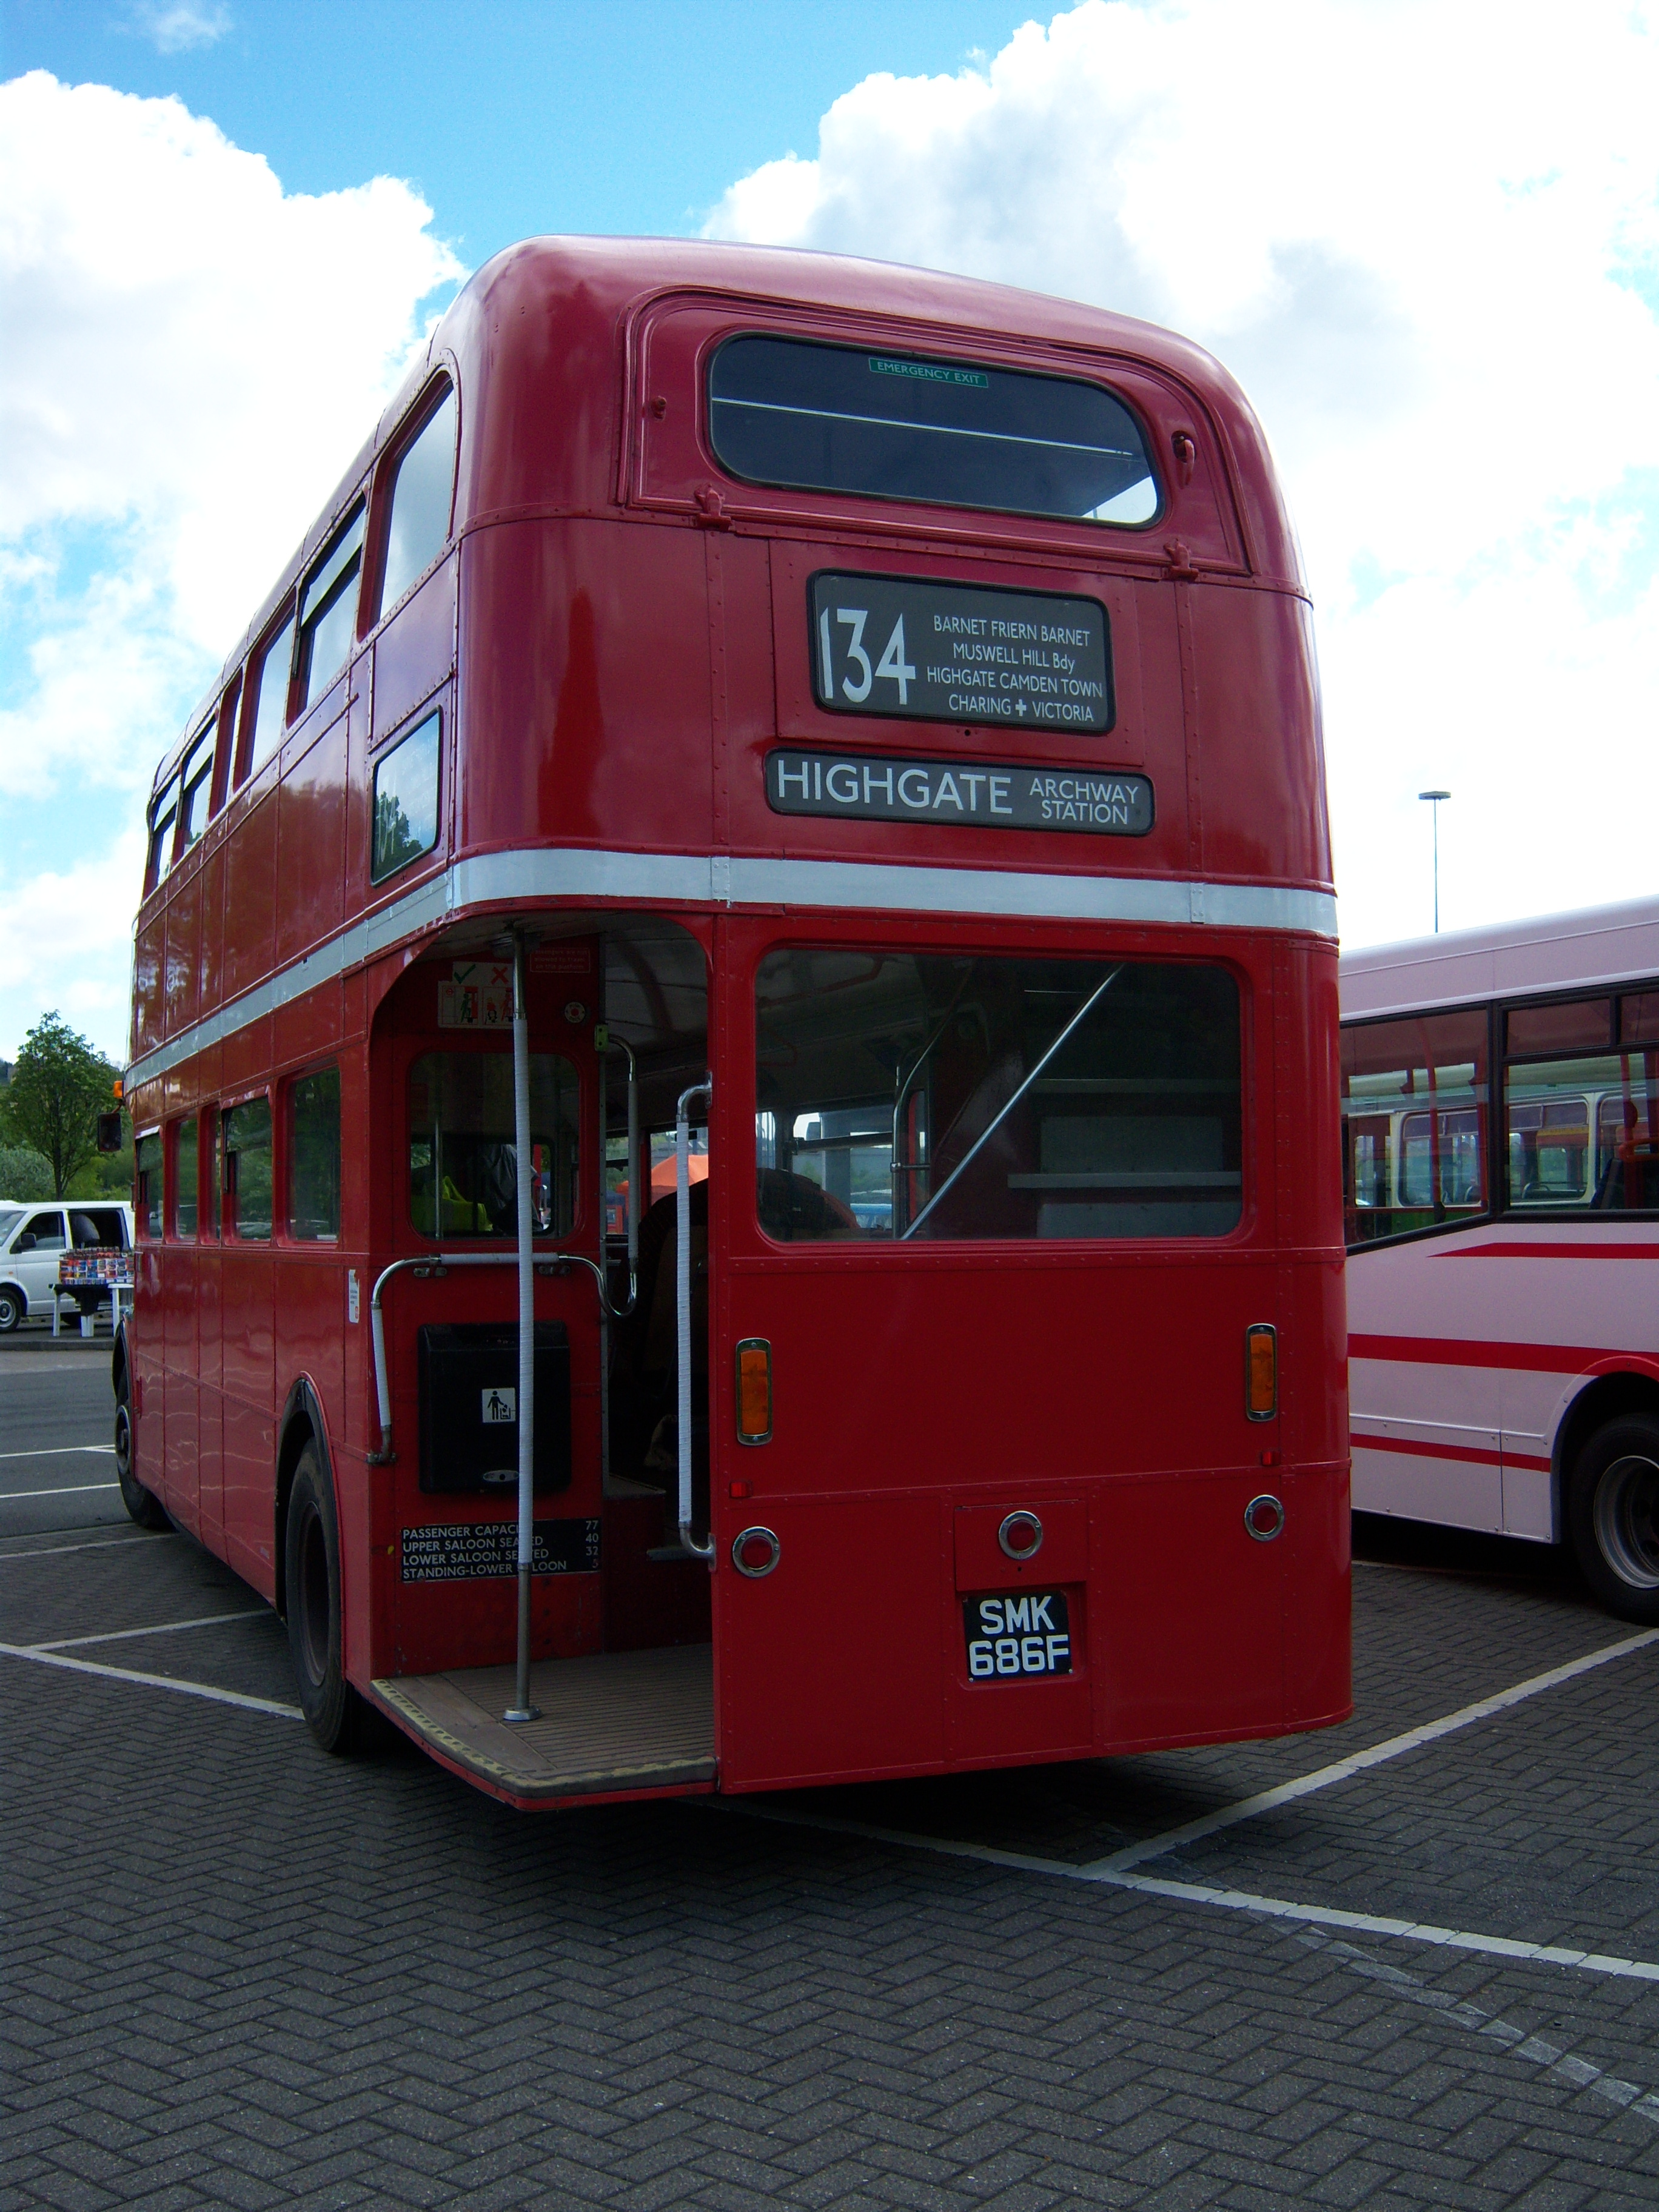 File:Routemaster bus RML 2686 Routemaster 50 livery SMK 686F Metrocentre  rally 2009 pic 12